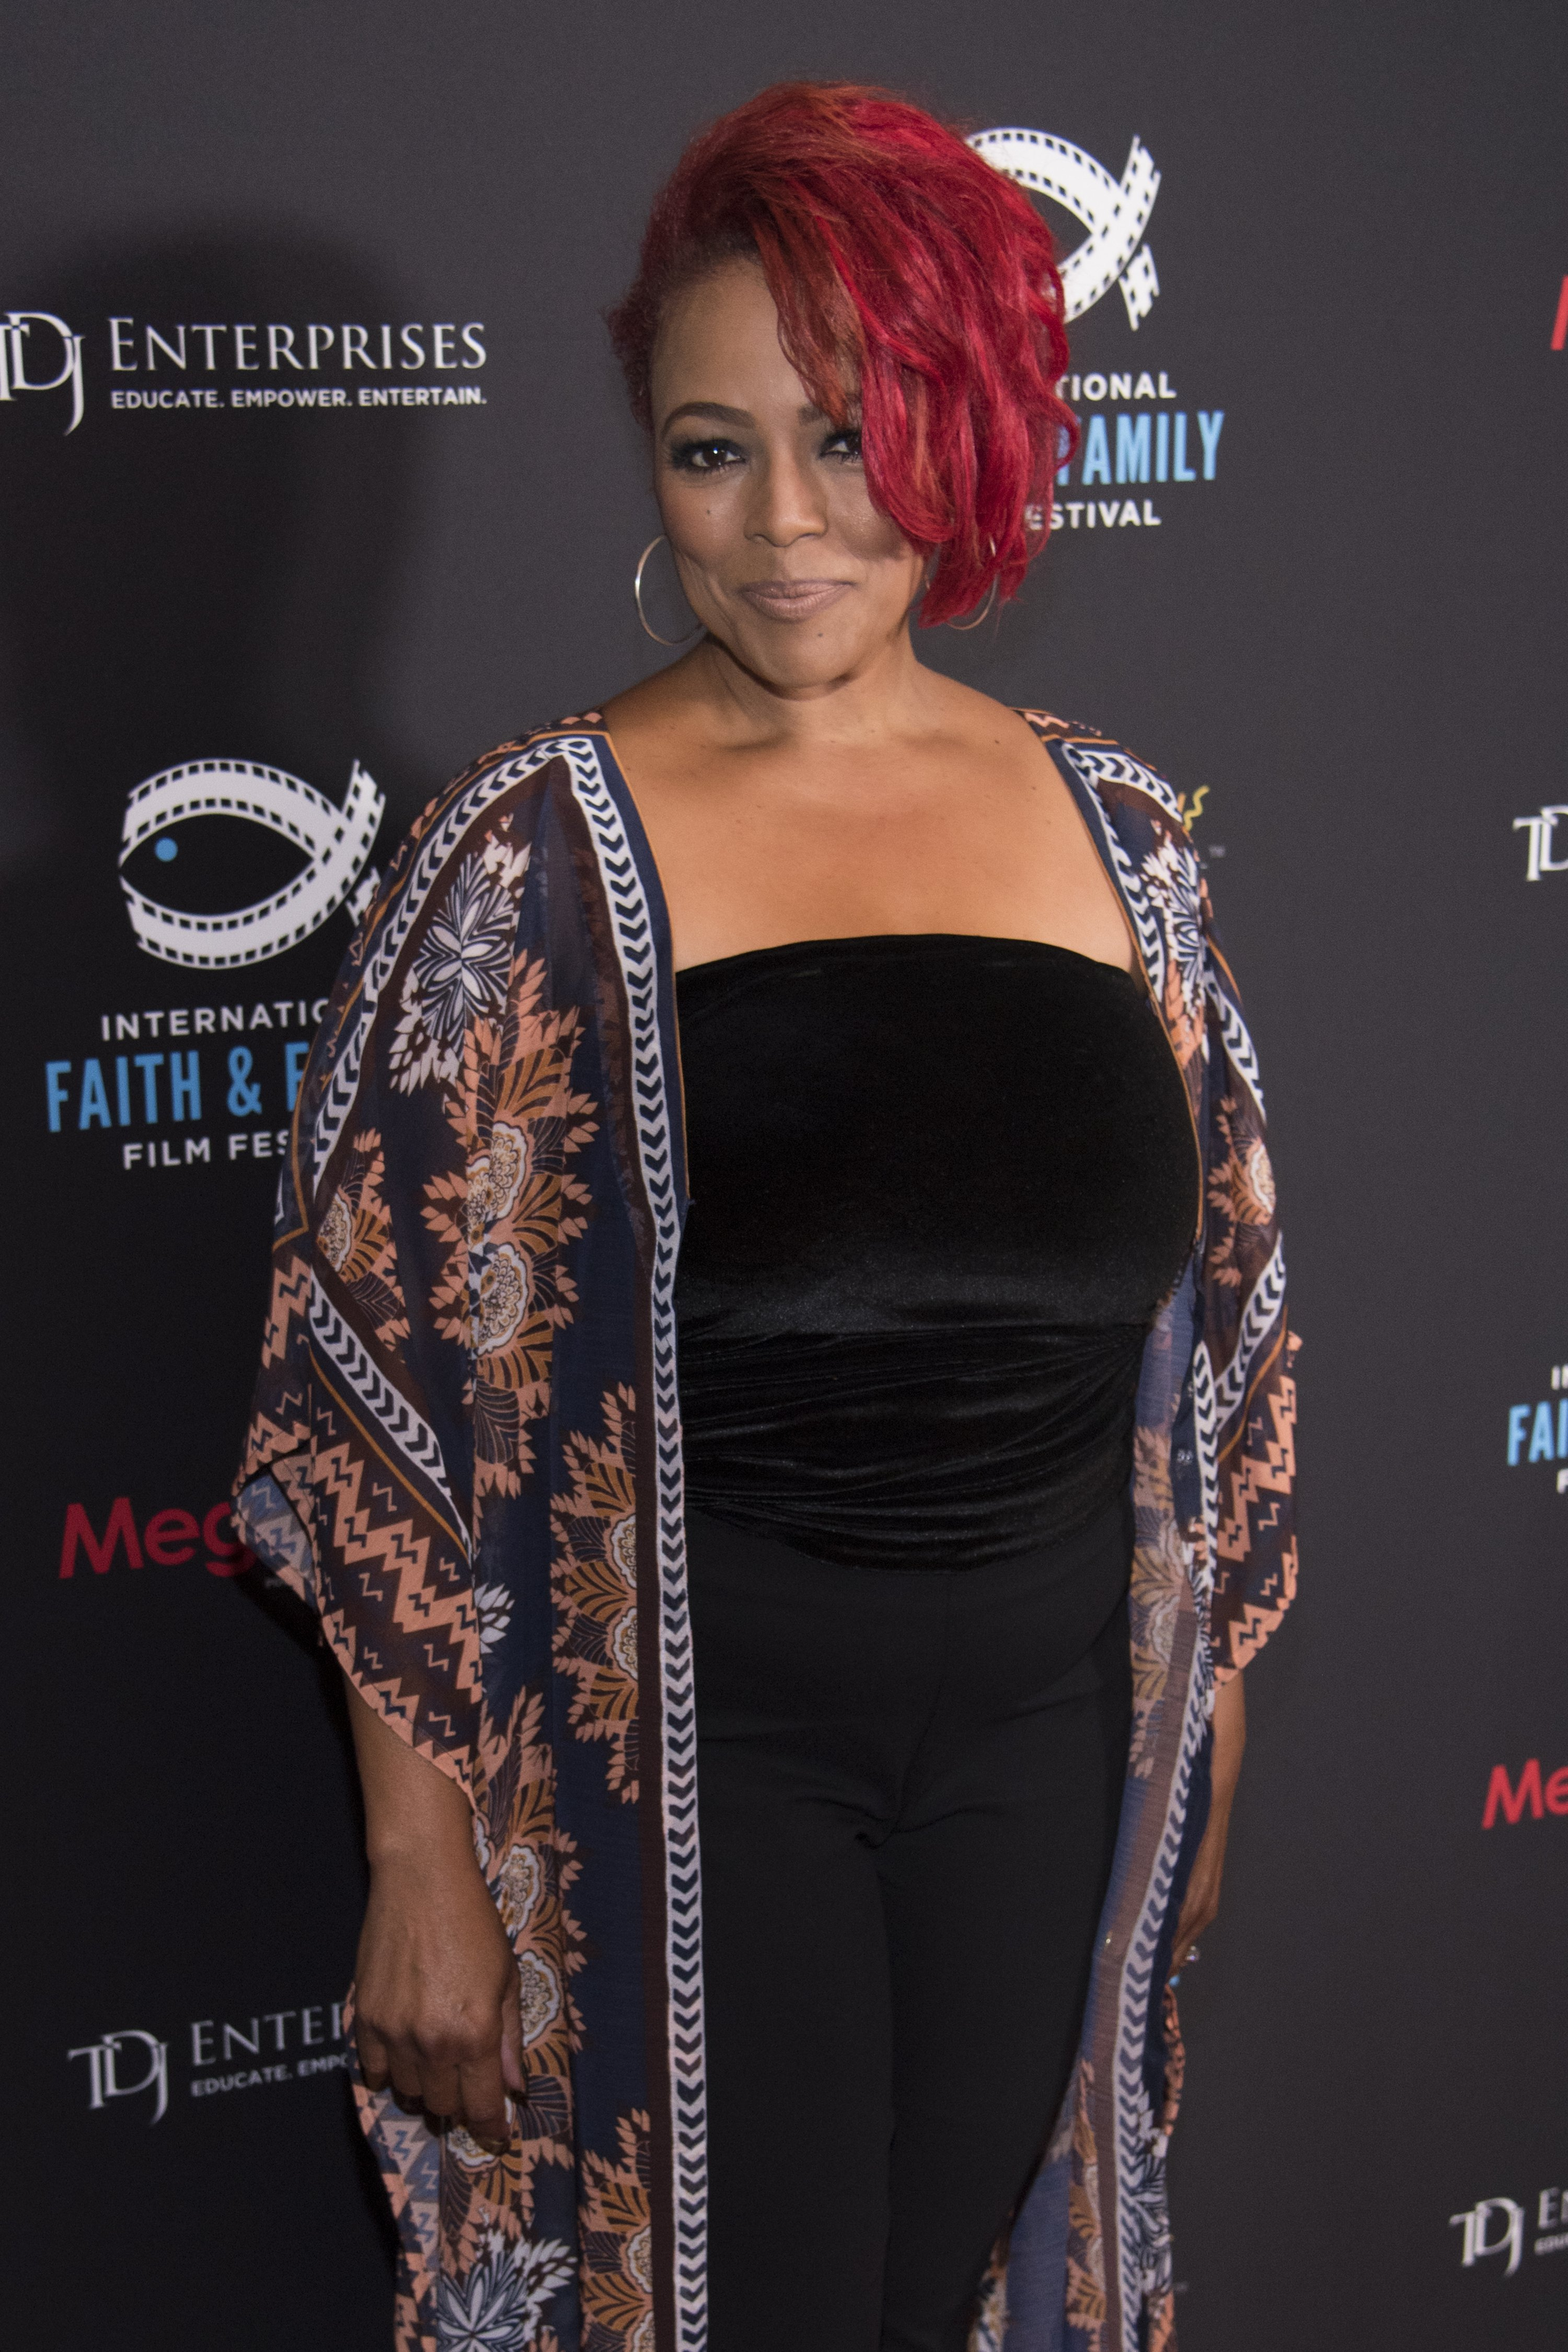 Kim Fields at the MegaFest International Faith & Family Film Festival on July 1, 2017 in Dallas, Texas   Photo: Getty Images